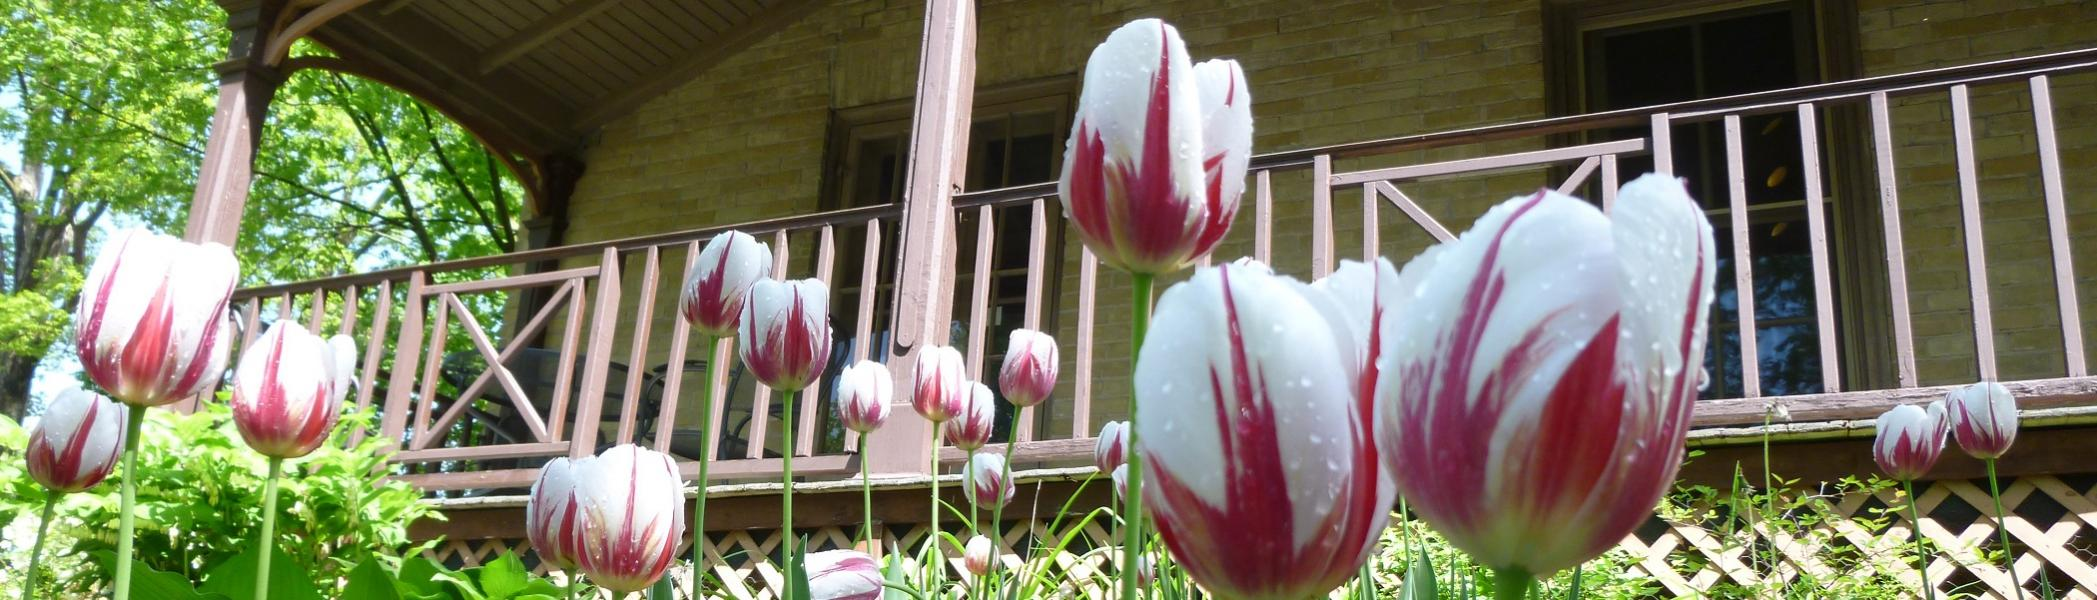 Canada 150th birthday tulips in garden outside Kerr House, Traill College